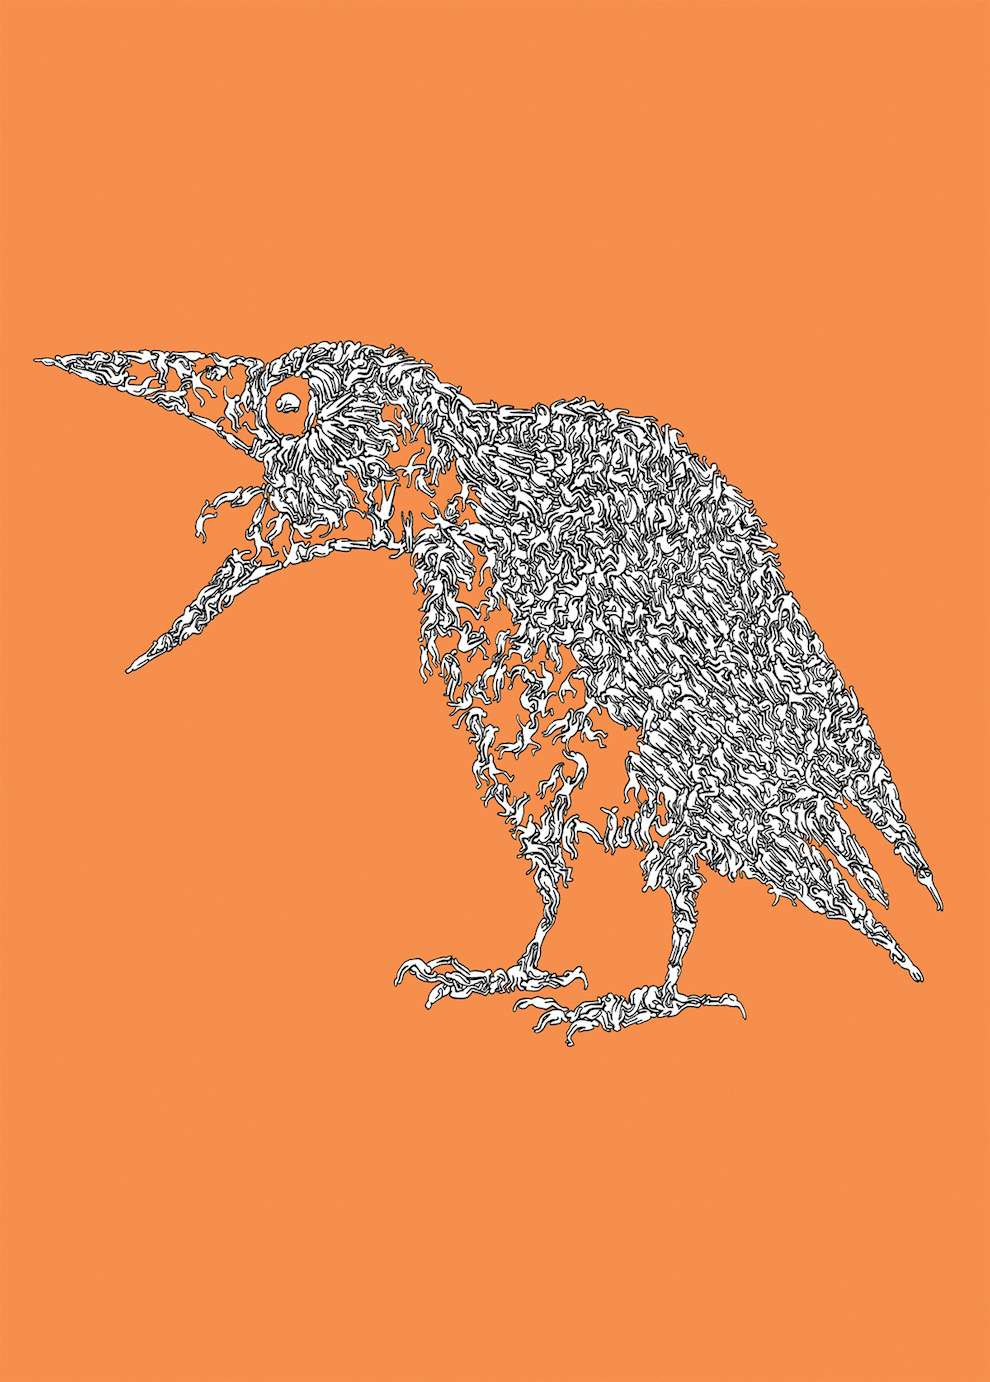 Simon Spilsbury Illustration Central Agency Cat 6 Wiring Diagram Line Art Of A Crow Made Off Humans Body